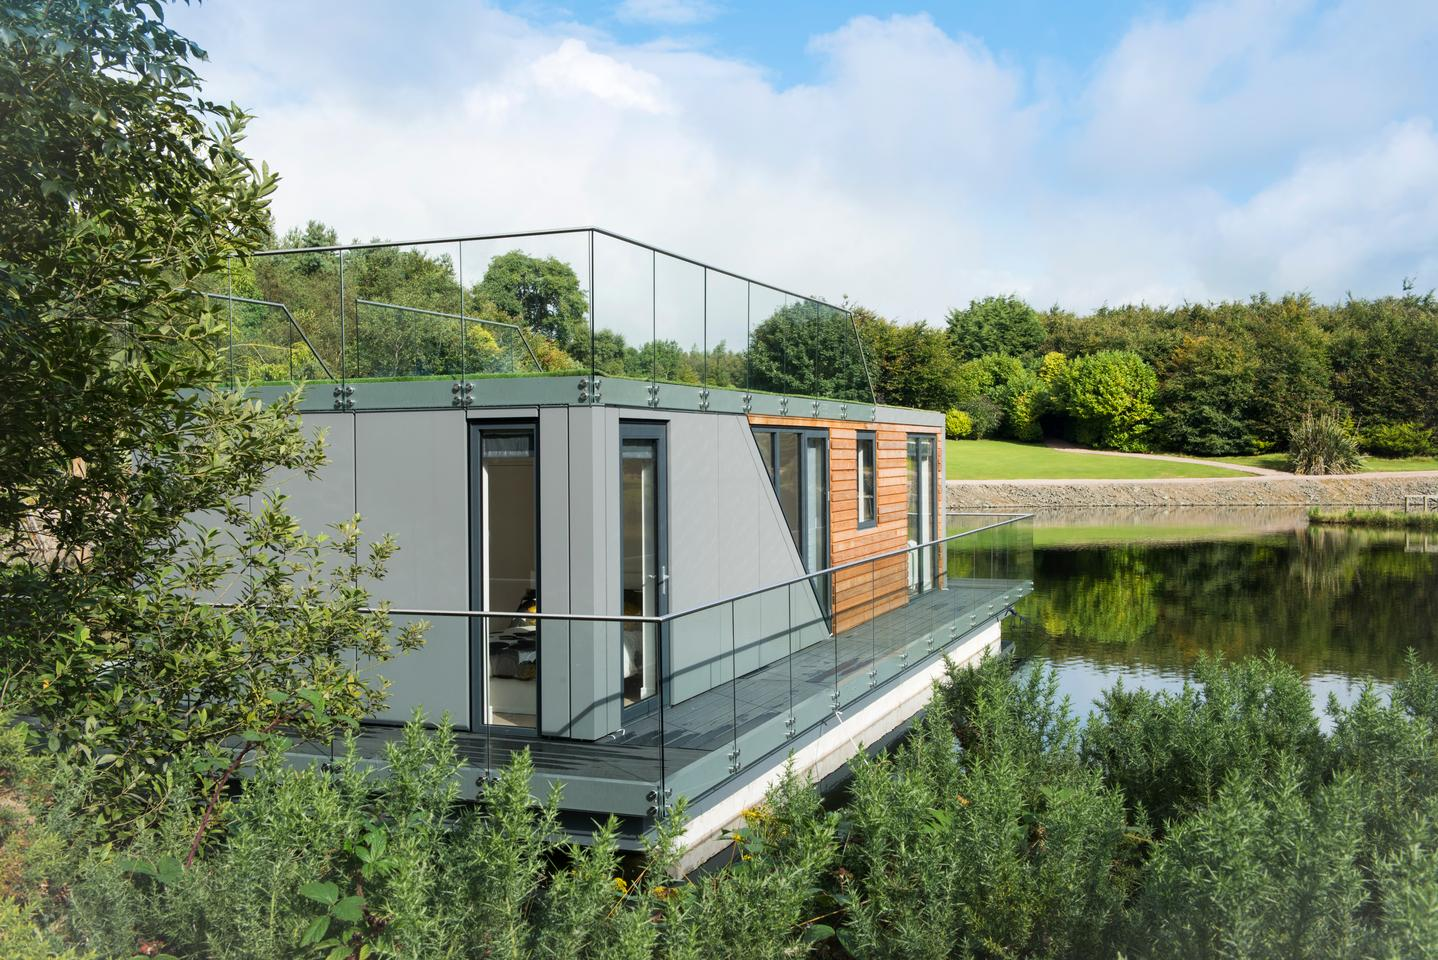 The goal of the recently-launched Bluefield Houseboats is to offer a luxurious living experience on the water